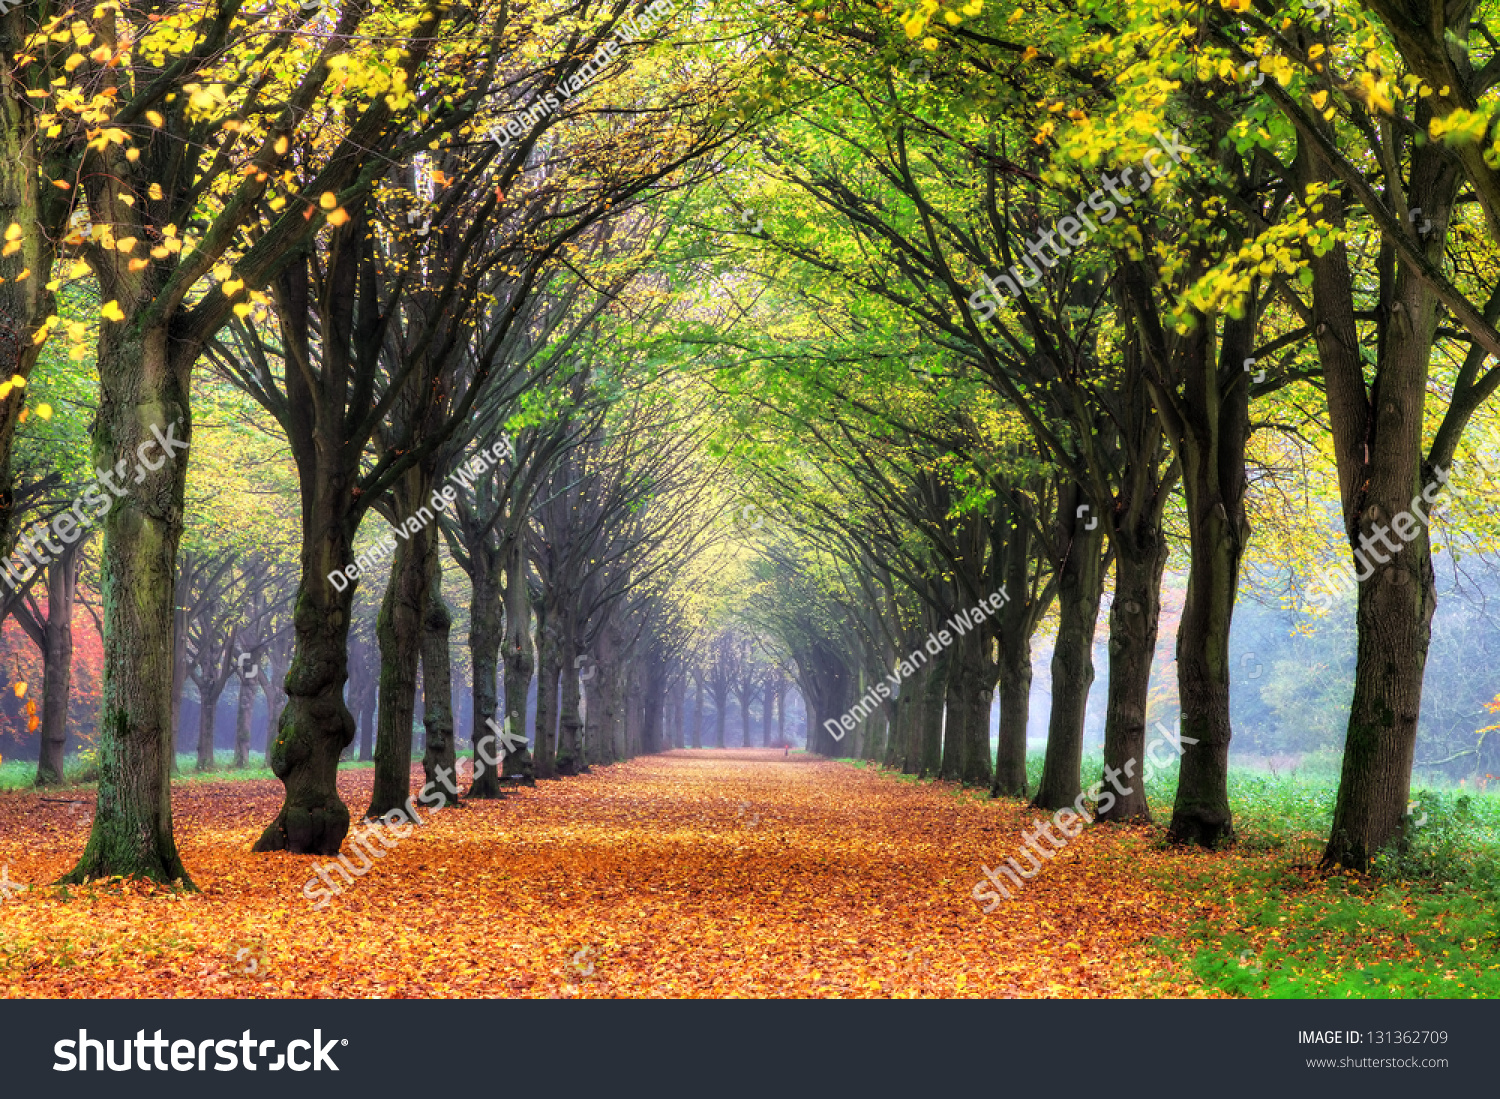 Beautiful Colored Trees Het Amsterdamse Bos Stock Photo (Royalty ...